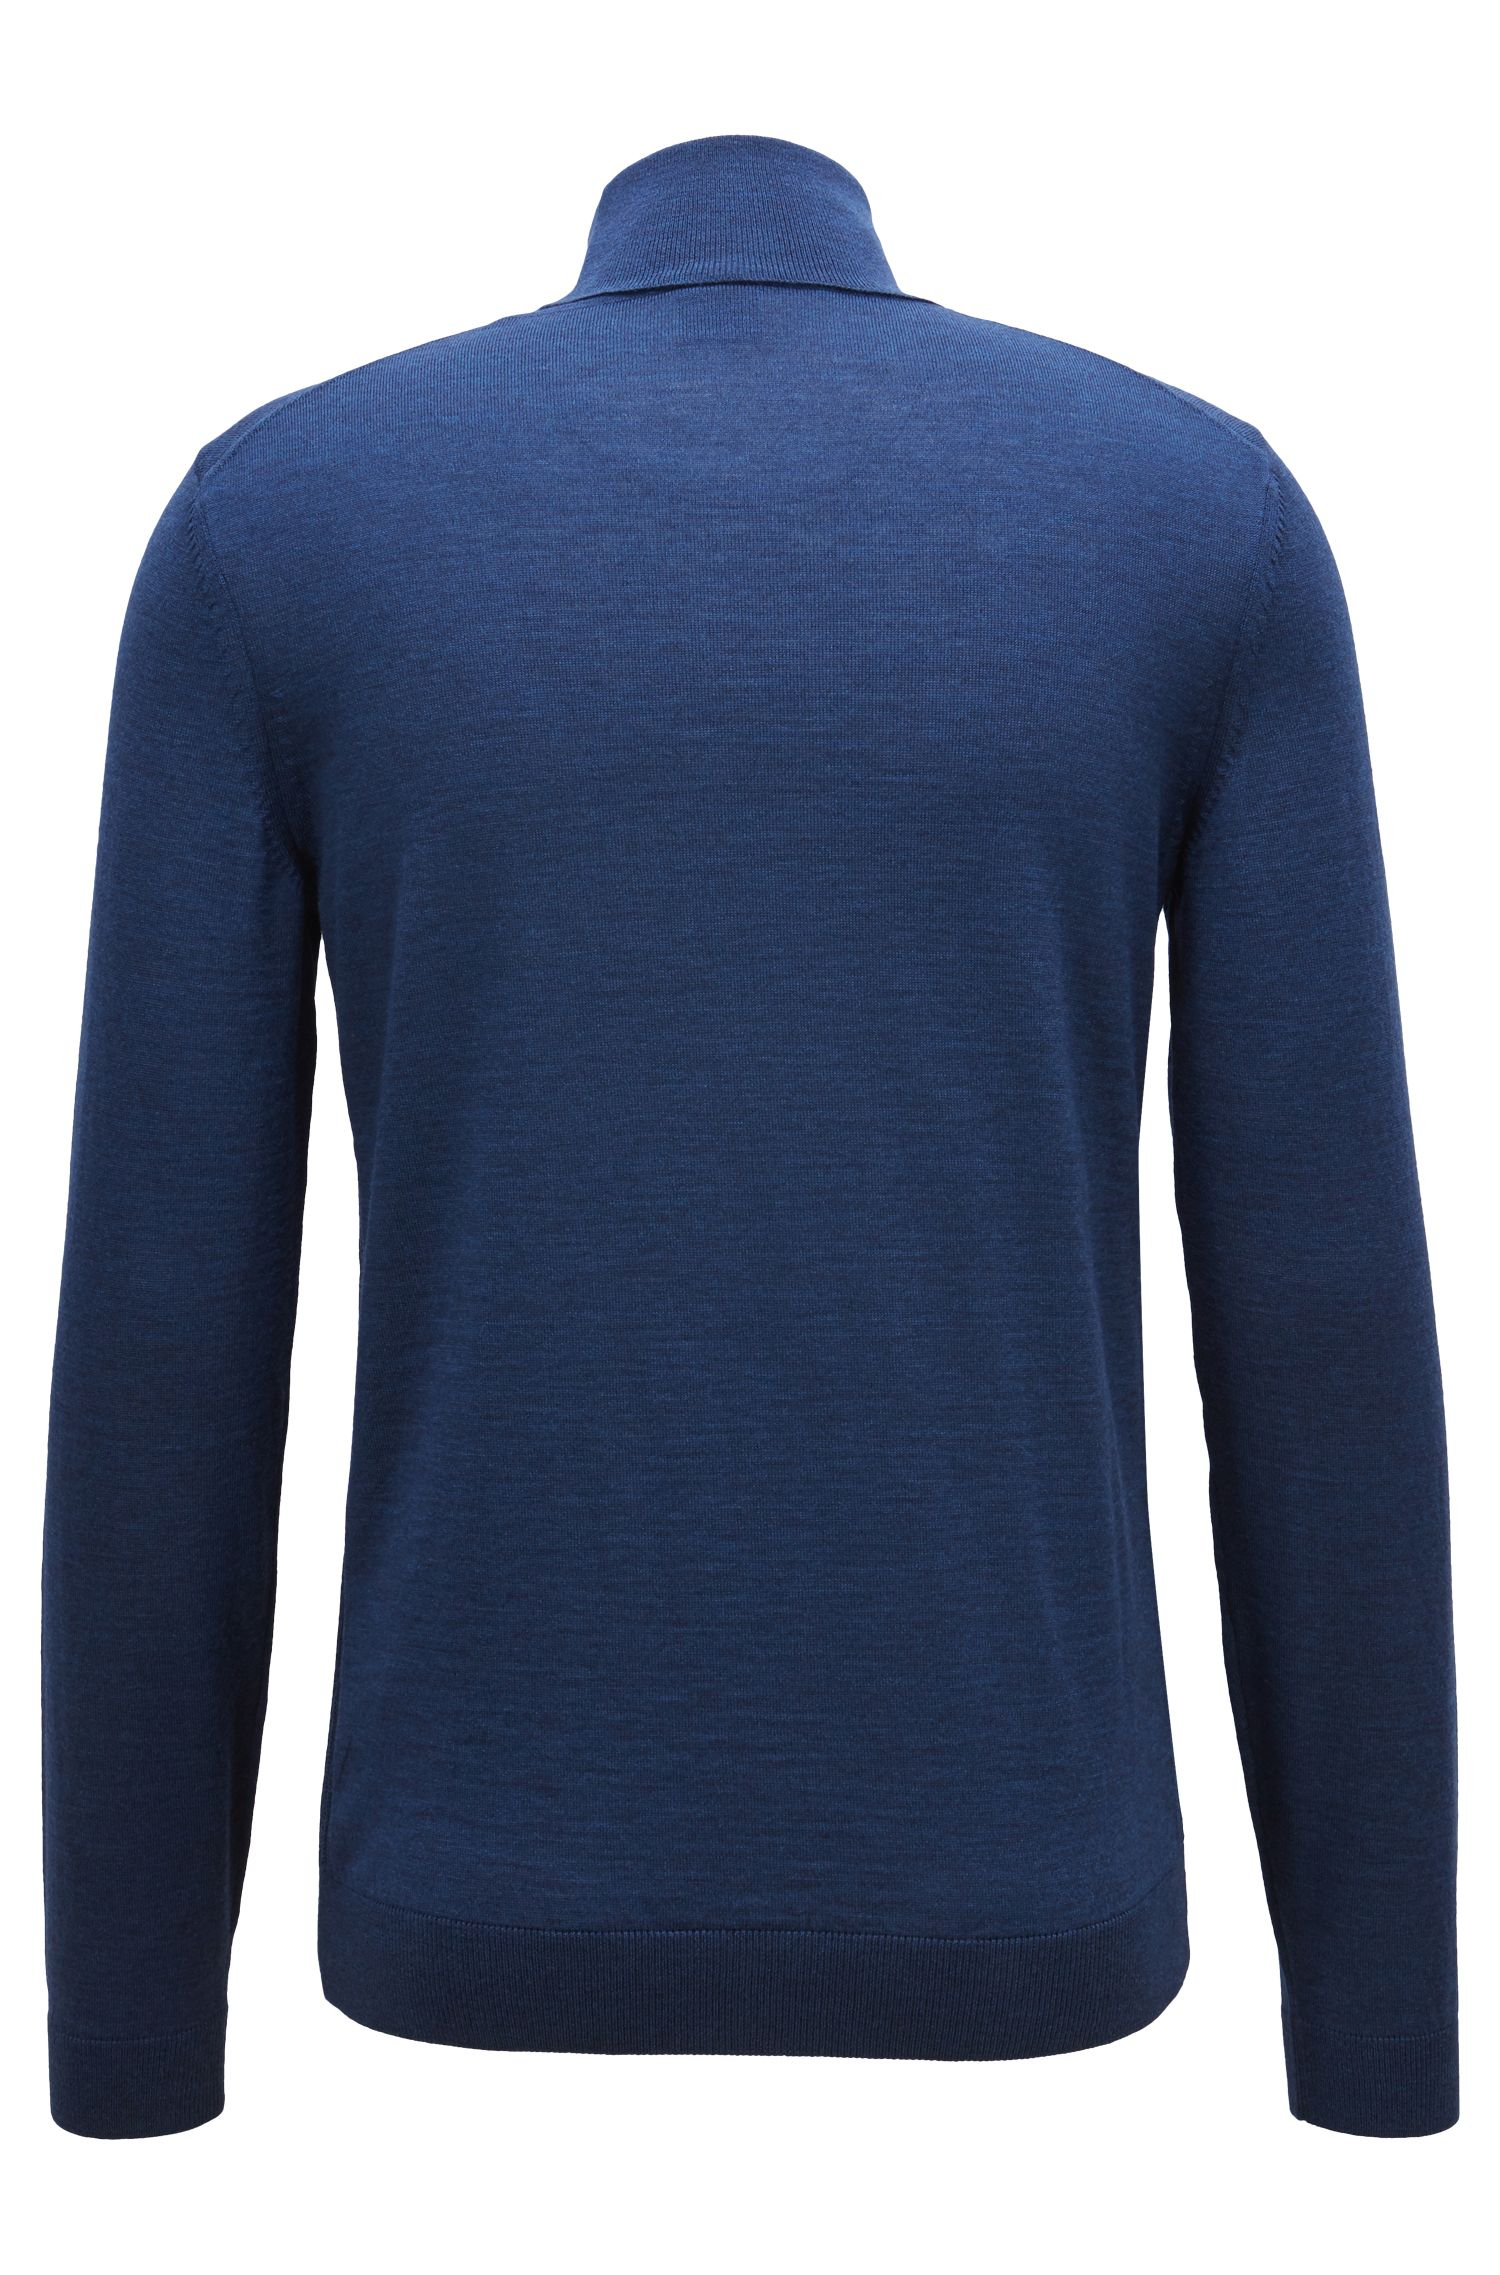 Turtleneck sweater in extra-fine Italian merino wool, Blue